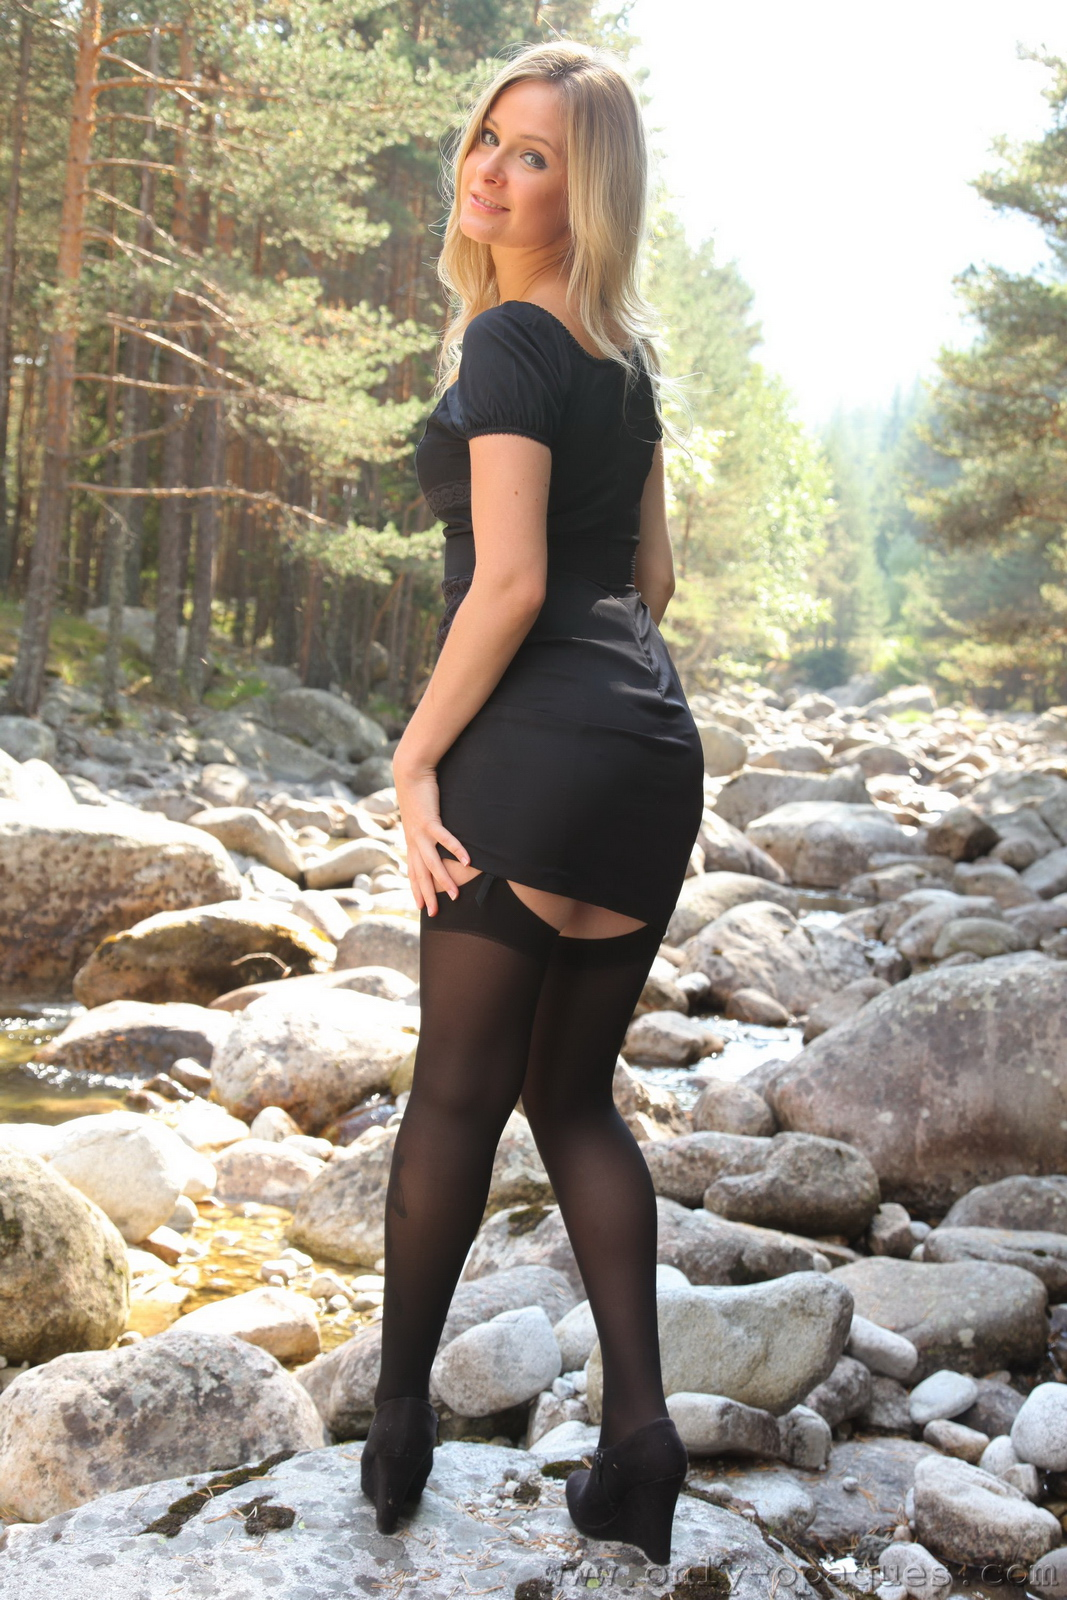 elle-richie-black-stockings-garters-outdoor-onlyopaques-04